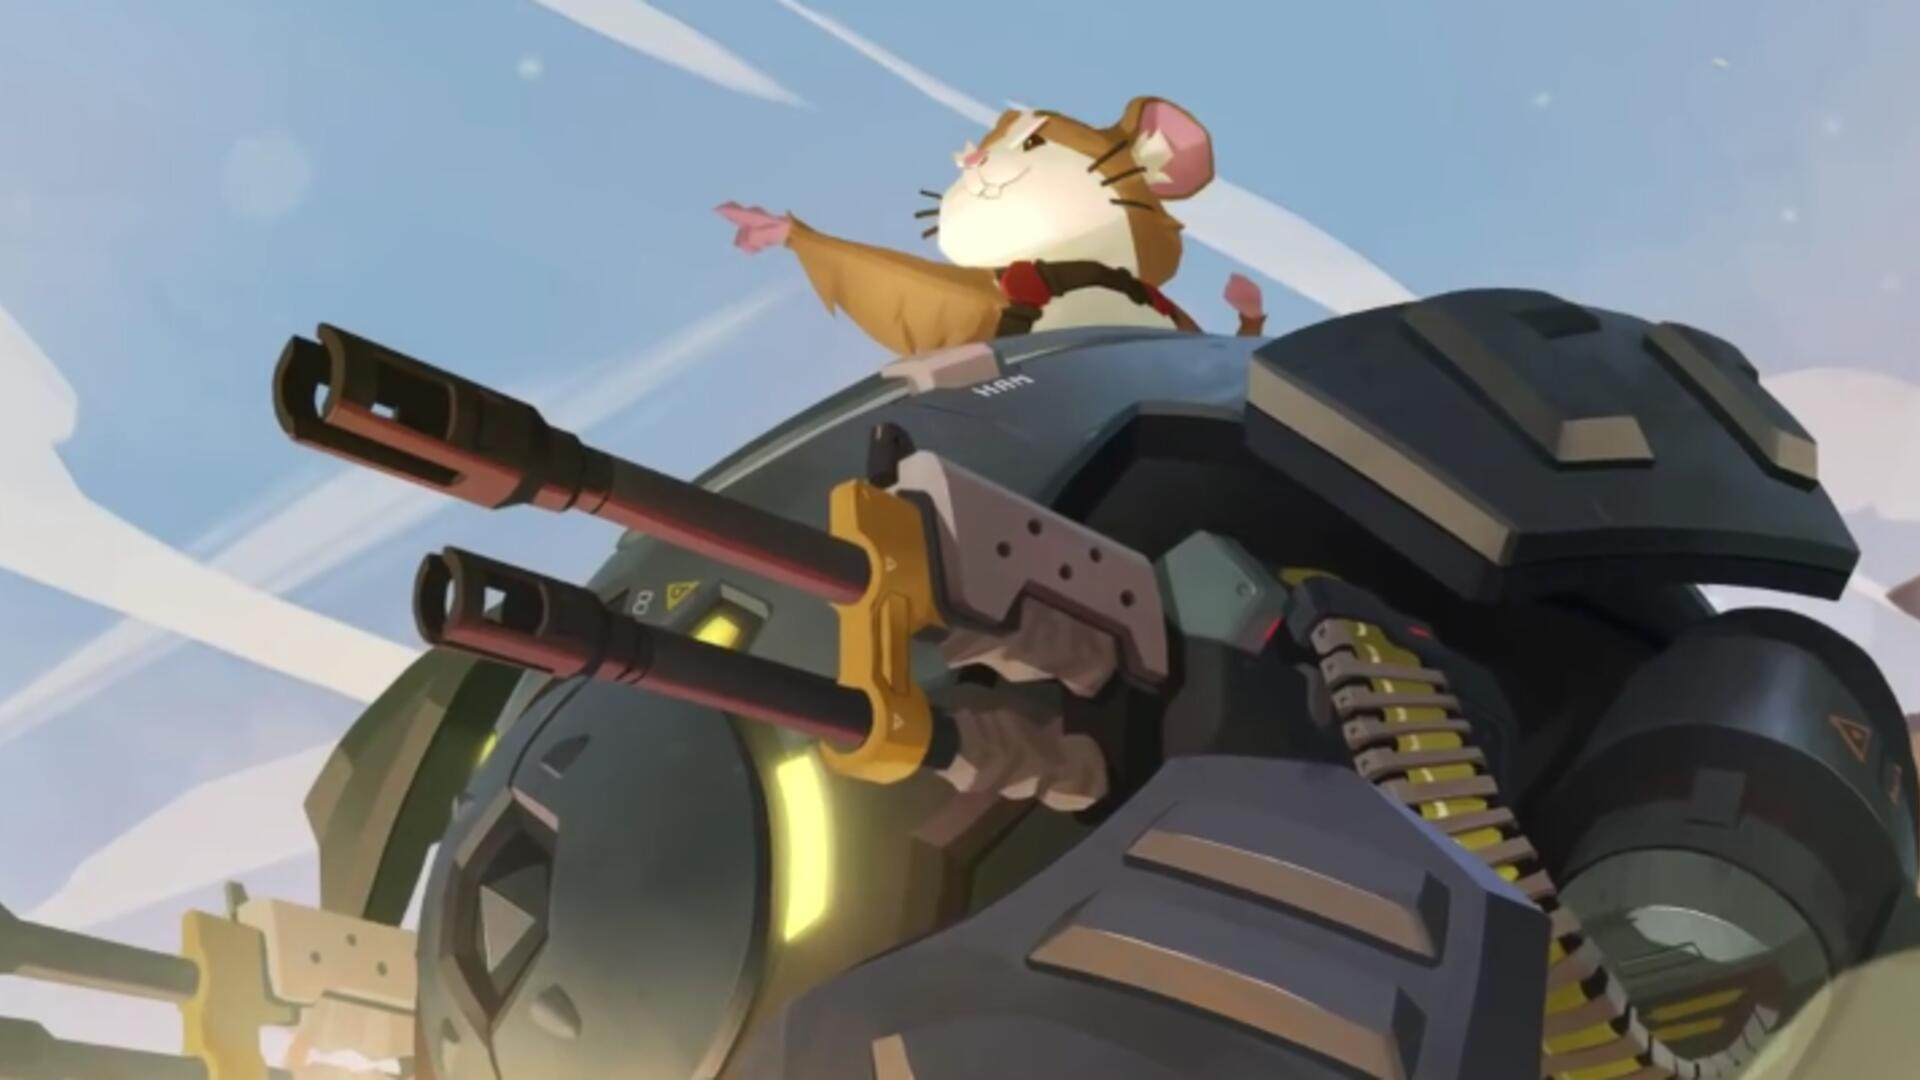 Wrecking Ball, Overwatch's Cute Hamster Mech Pilot, is Live Now in the PTR